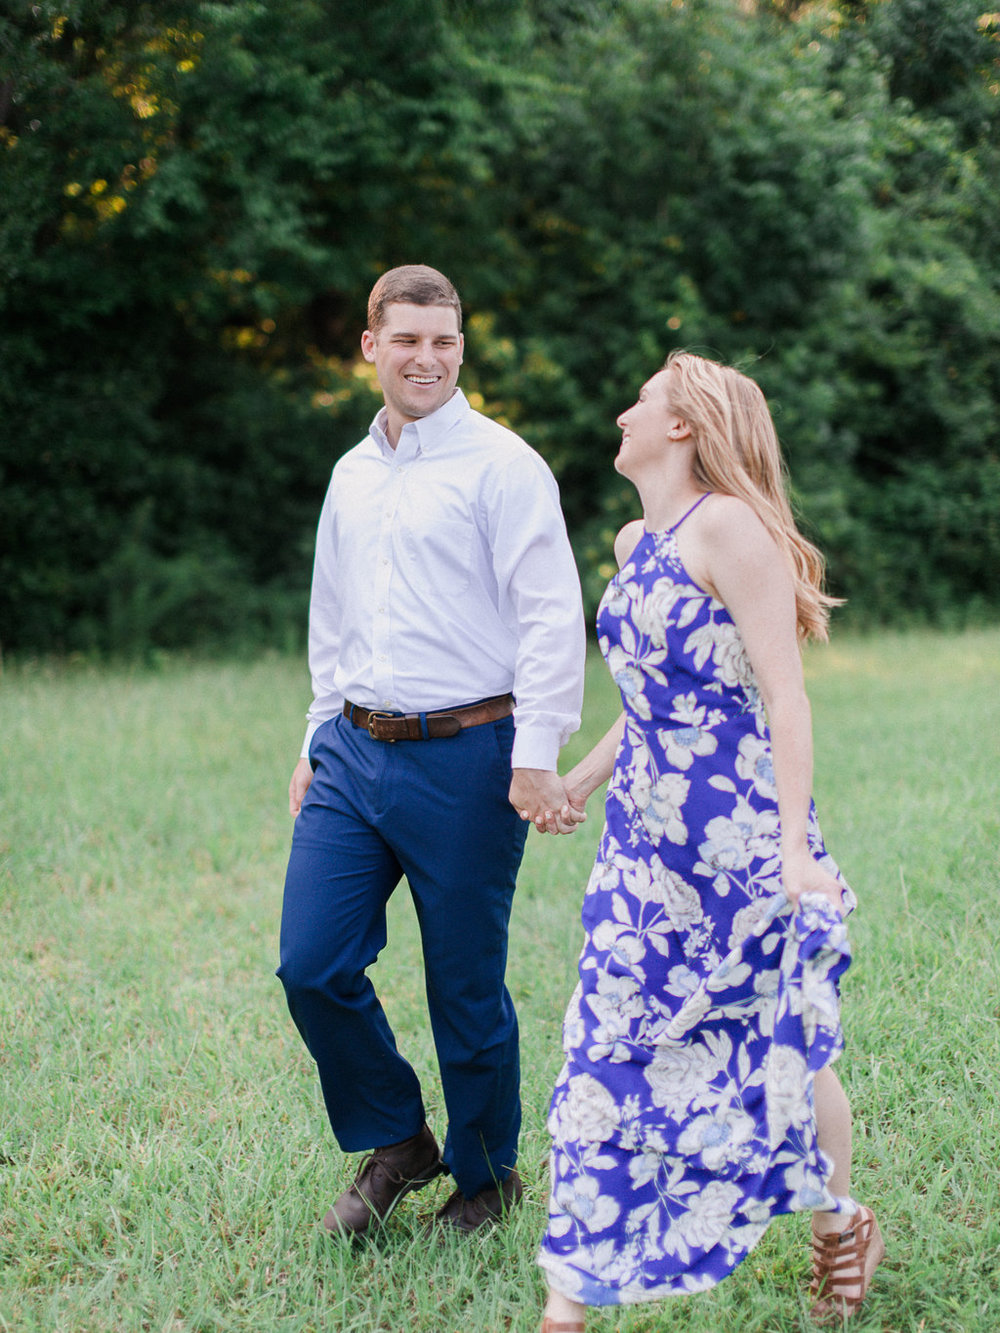 Woodstock-Engagement-Session-atlanta-wedding-photographer-hannah-forsberg-3.jpg